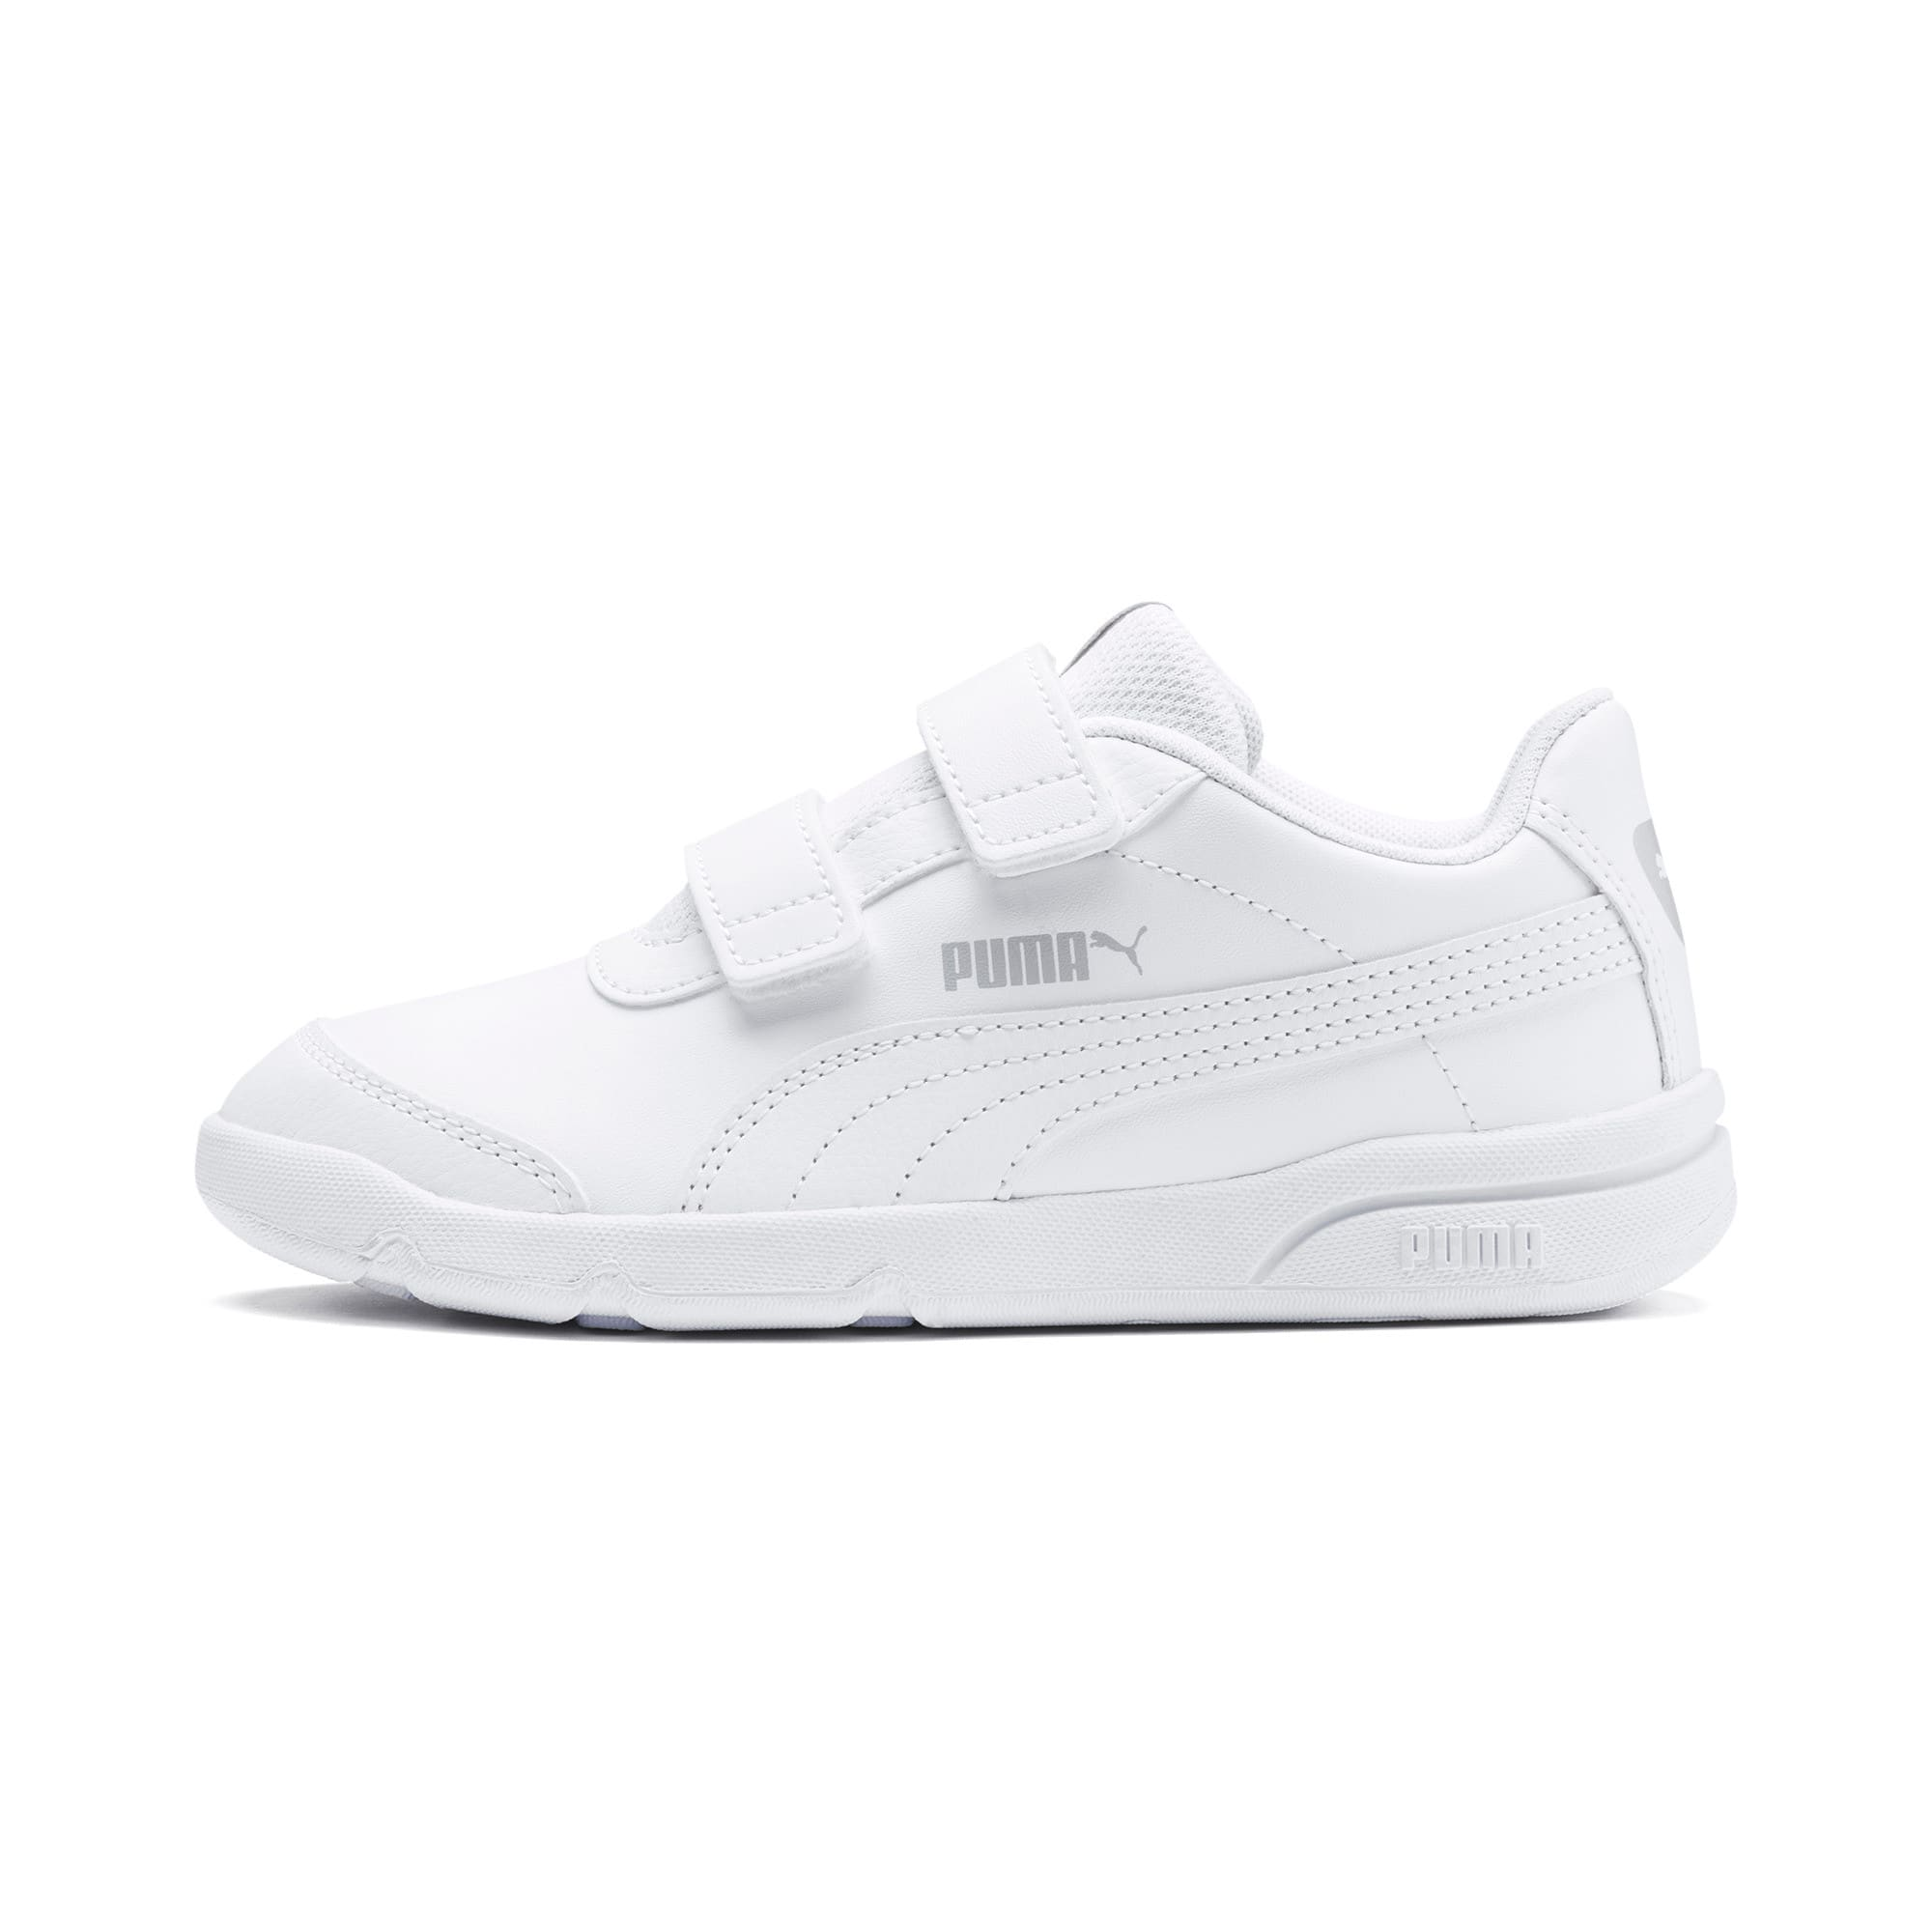 Thumbnail 1 of Stepfleex 2 SL VE V Kids' Trainers, Puma White-Puma White, medium